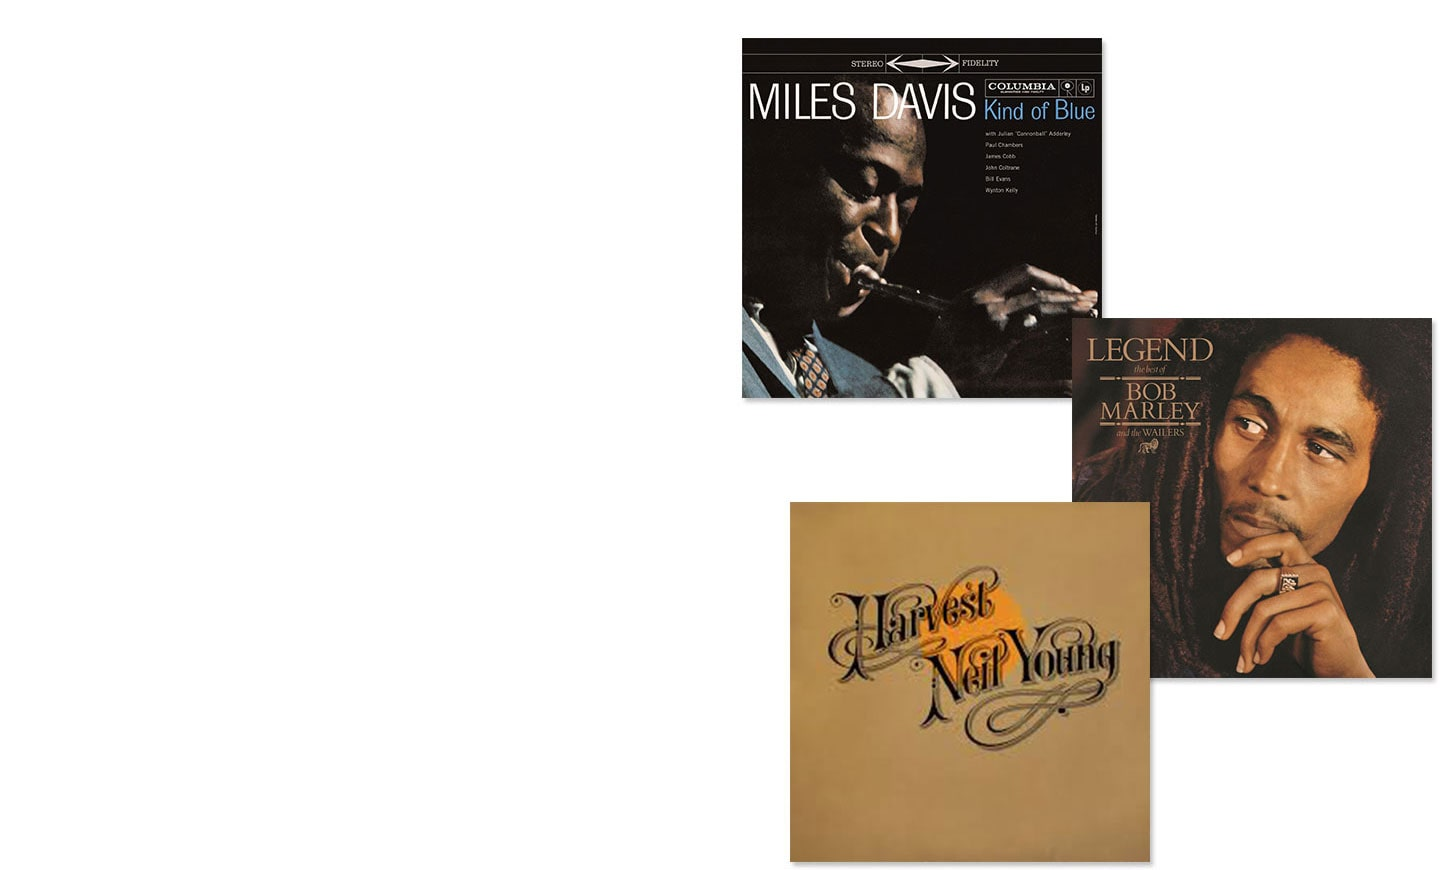 Album covers of Miles Davis Kind of Blue, Bob Marley & the Wailers Legend and Neil Young Harvest